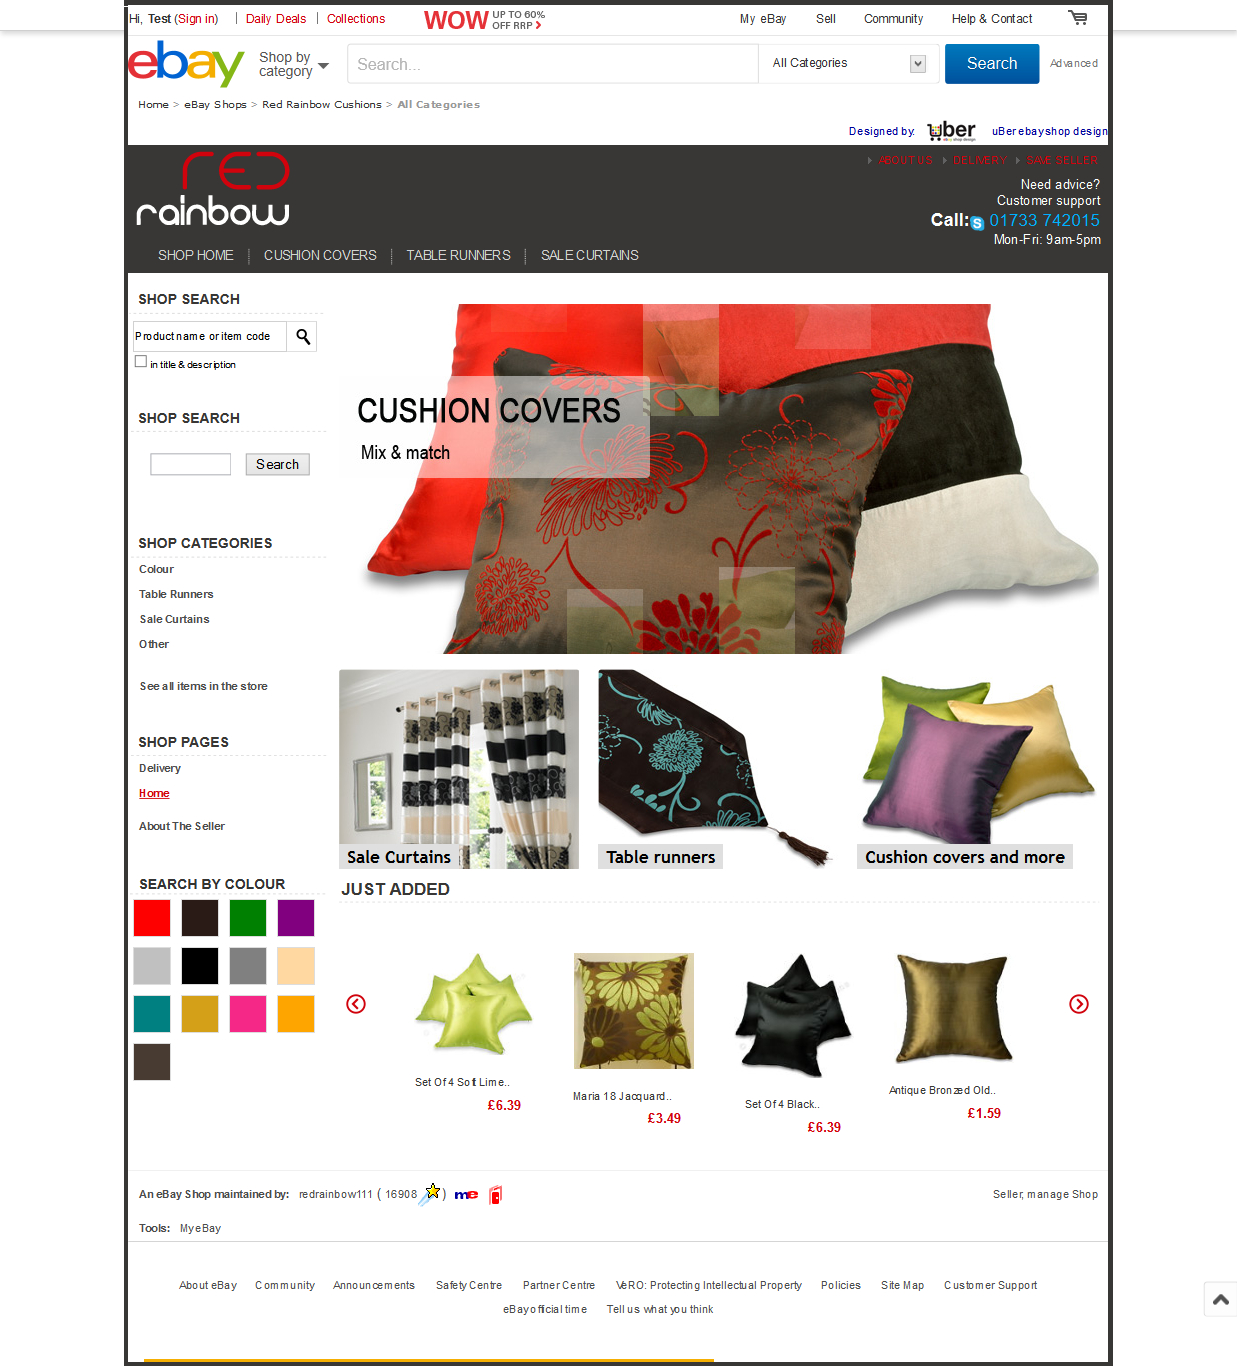 Red Rainbow Cushions Home page